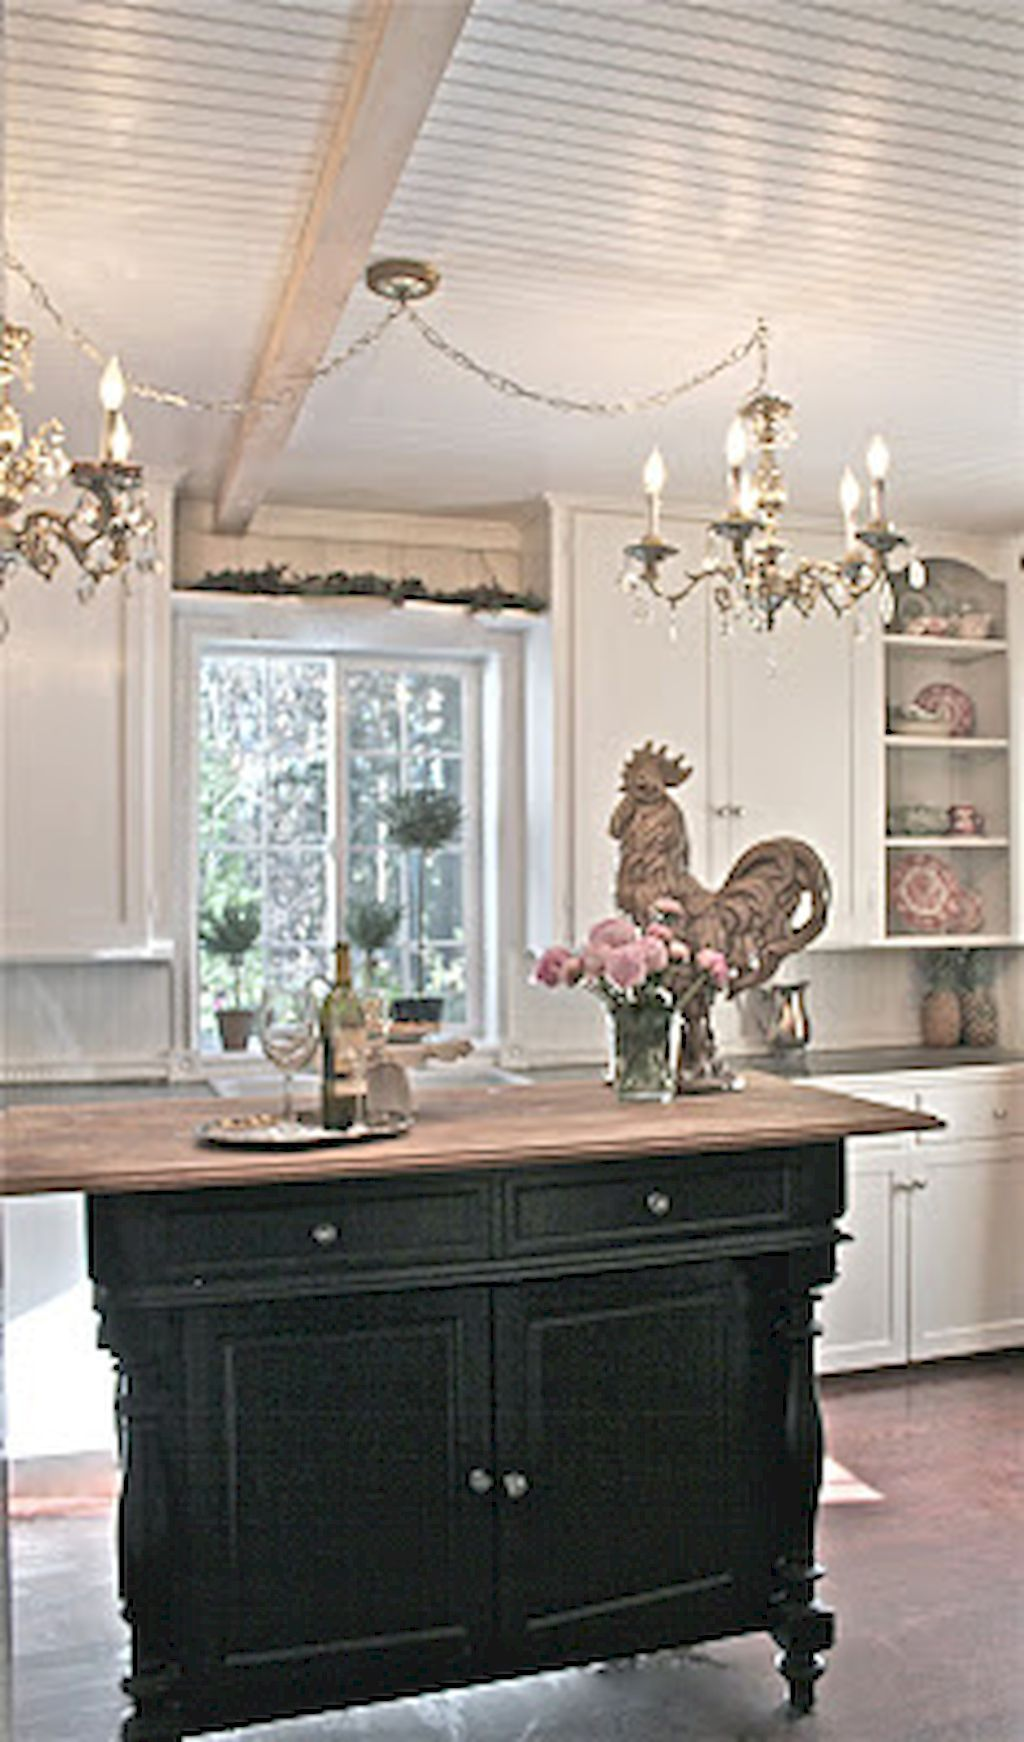 Modern French Country Kitchen Decorating Ideas (46